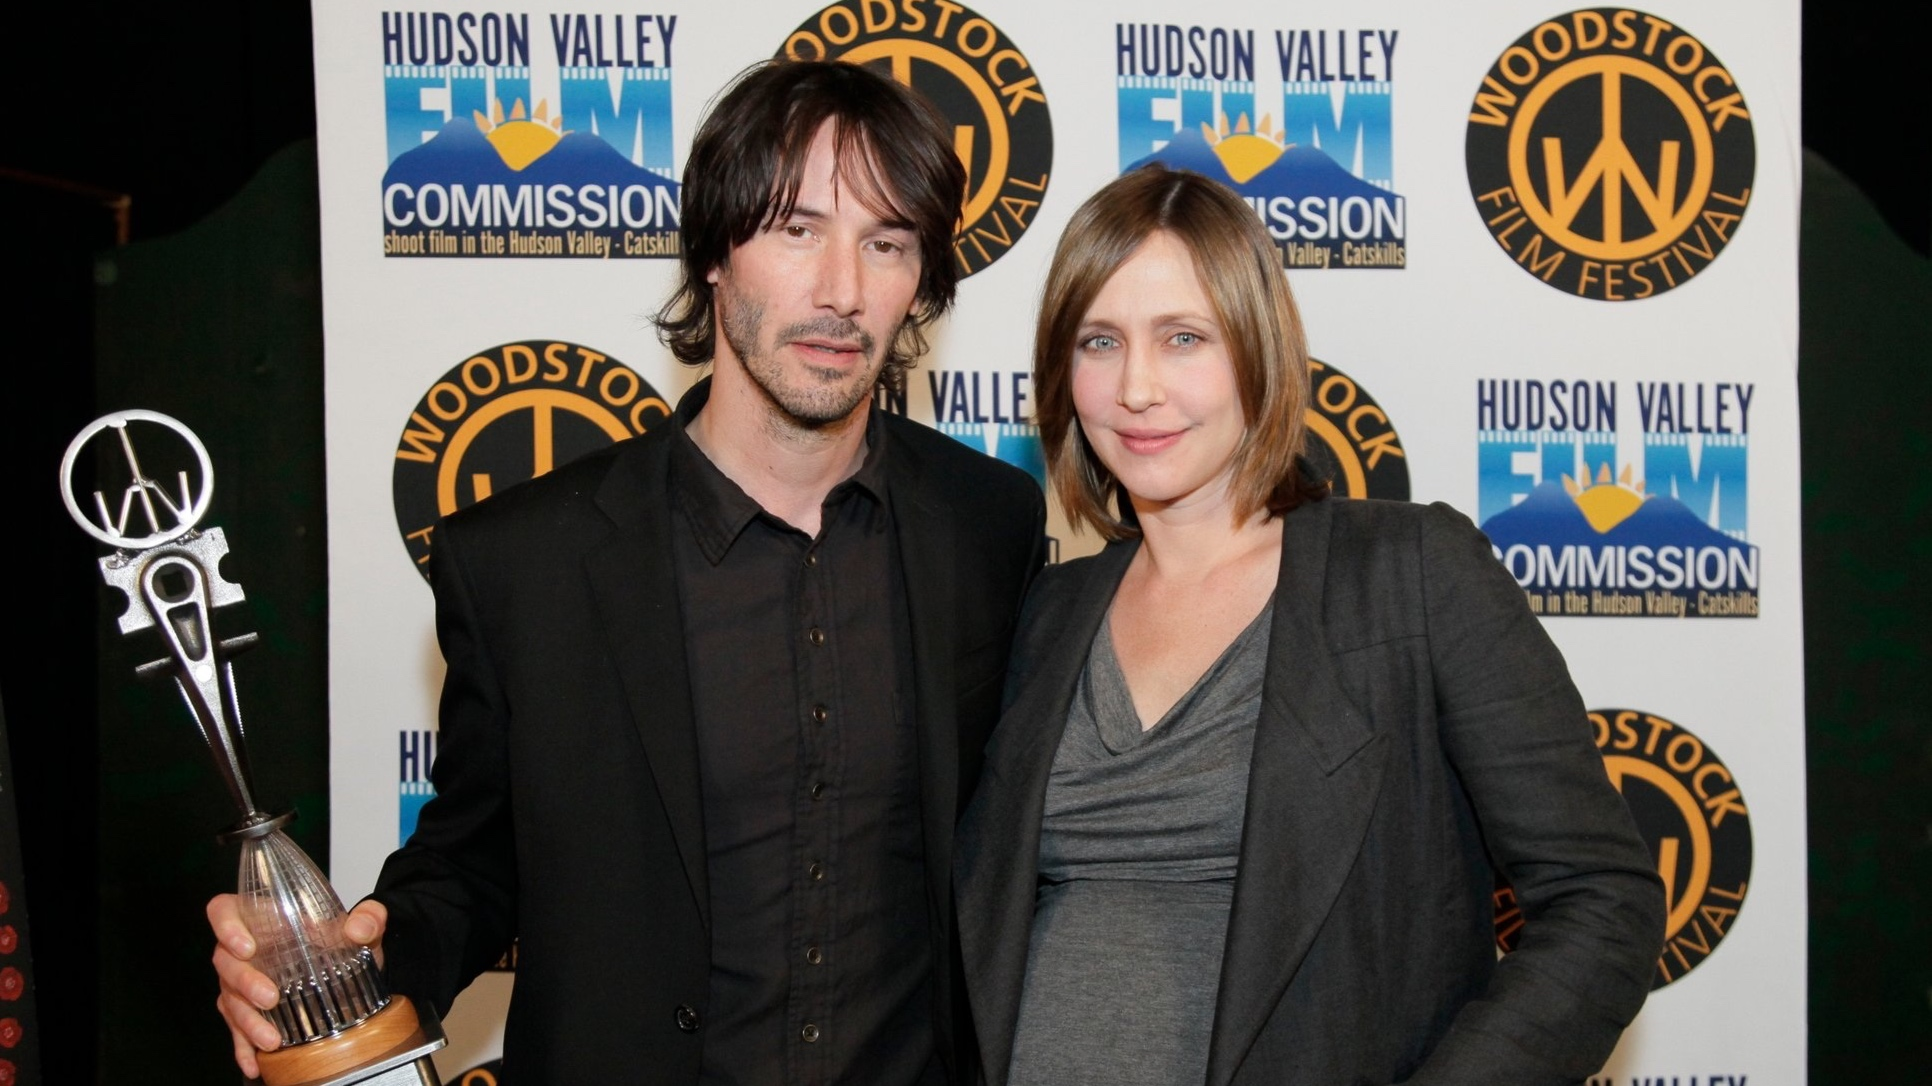 Keanu Reeves receives the Excellent in Acting Award presented by Vera Farmiga at the 2010 Woodstock Film Festival.